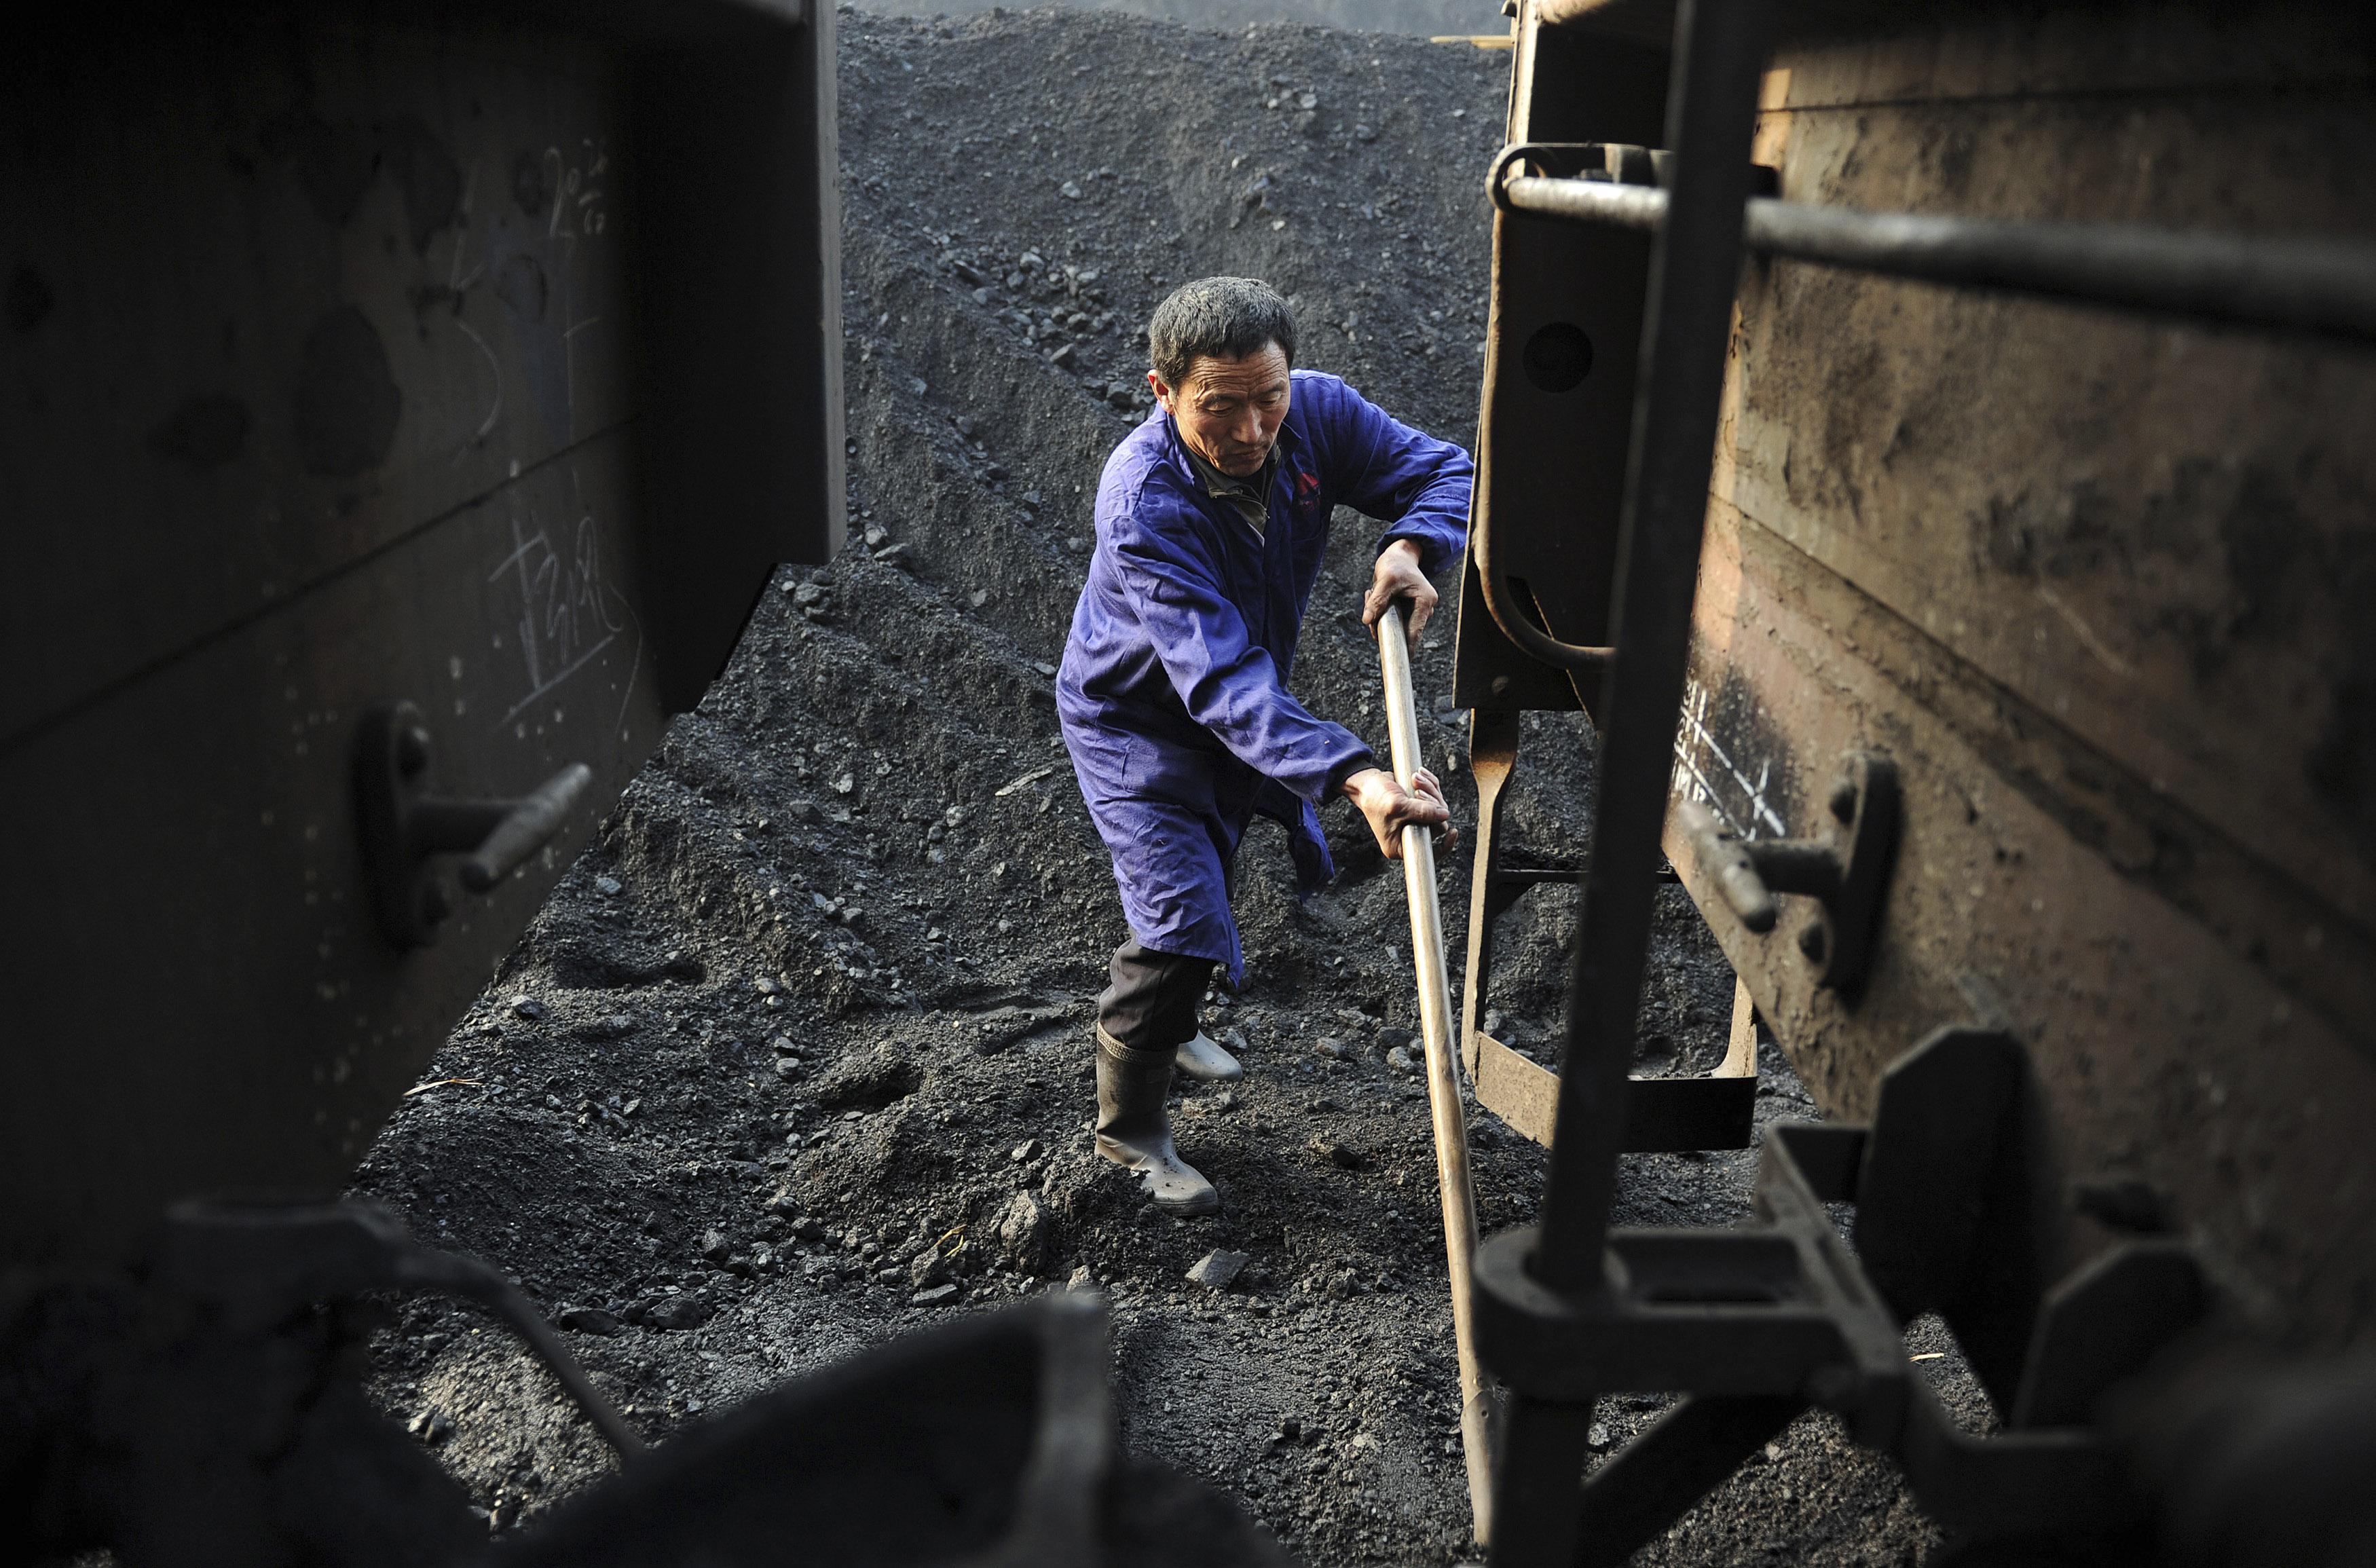 A worker shovels coal onto a freight train at a freight yard in Hefei, Anhui province, January 13, 2013. REUTERS/Stringer